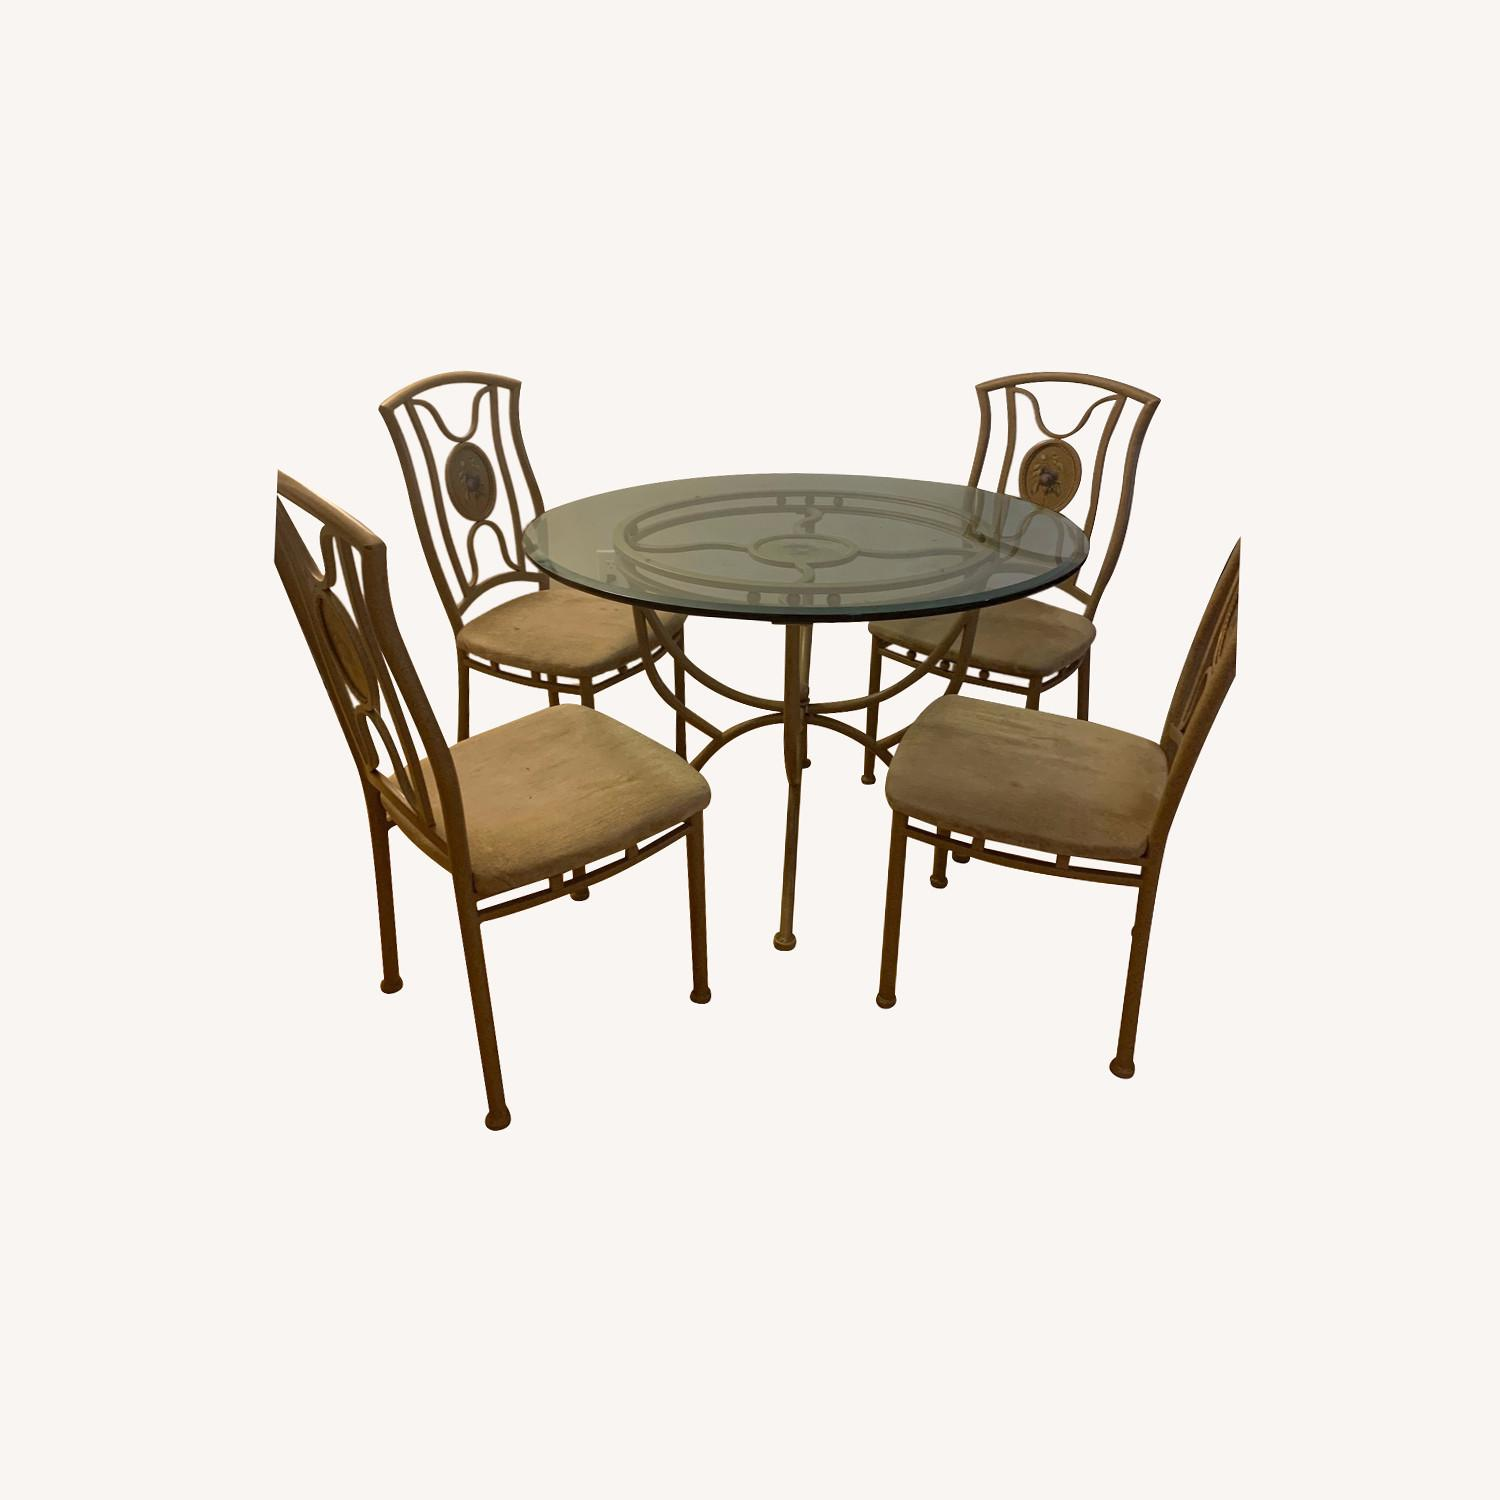 Vintage Glass Dining Room Table and Chair Set - image-0